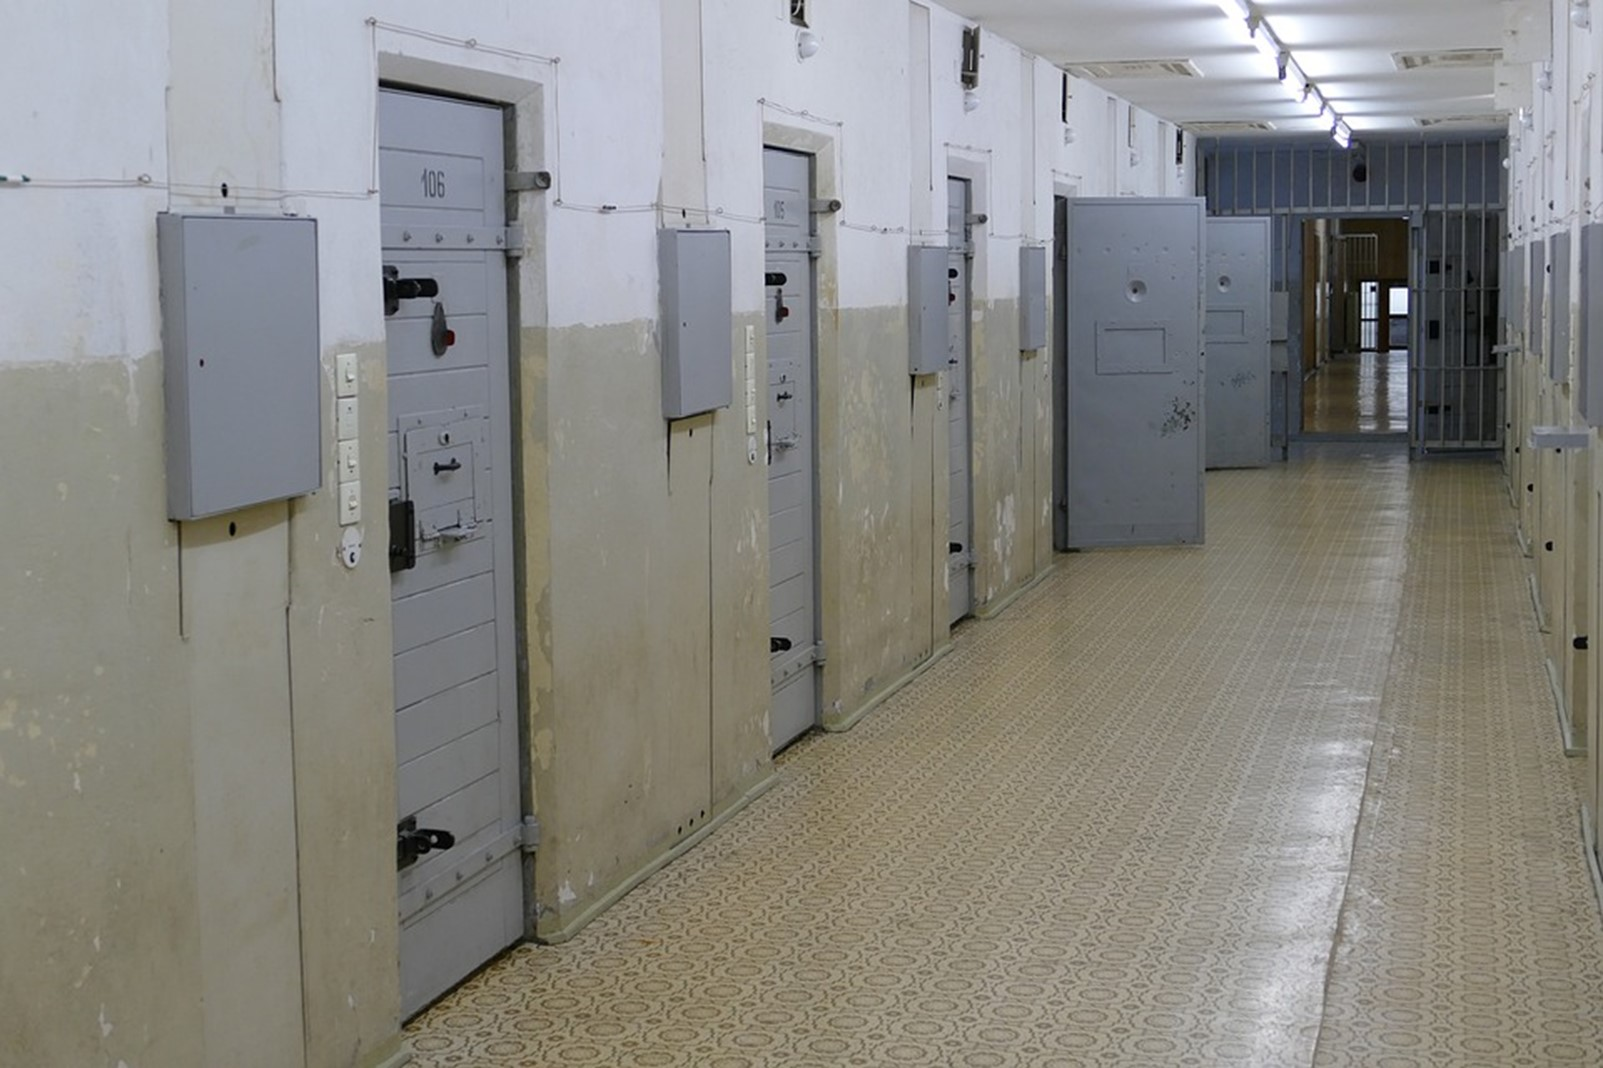 Jail used to detain offenders.